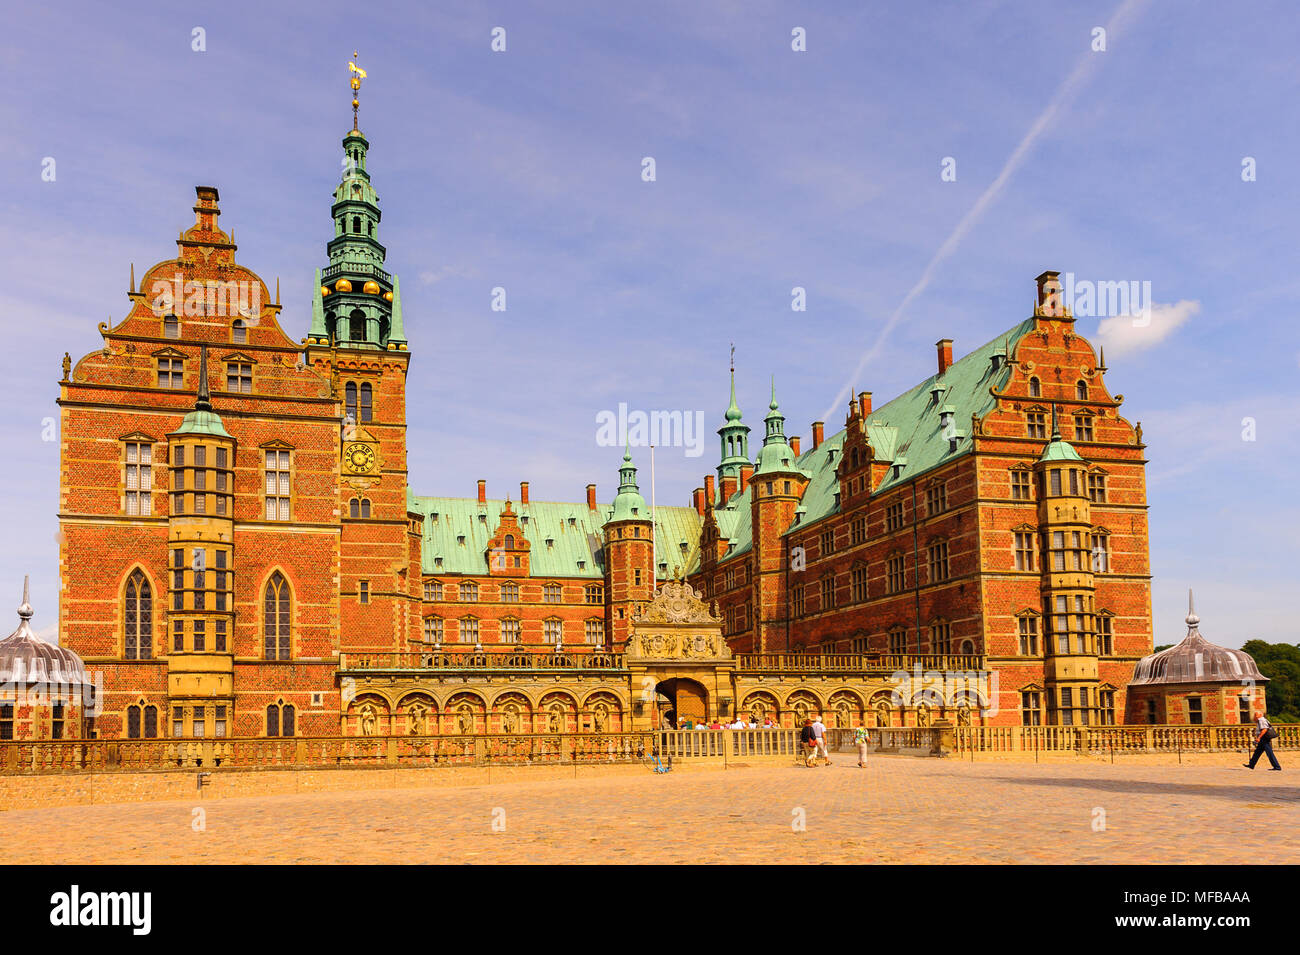 Frederiksborg Palace Or Castle A In Hillerod Denmark Former Royal Residence For King Christian IV And Now Museum Of National History